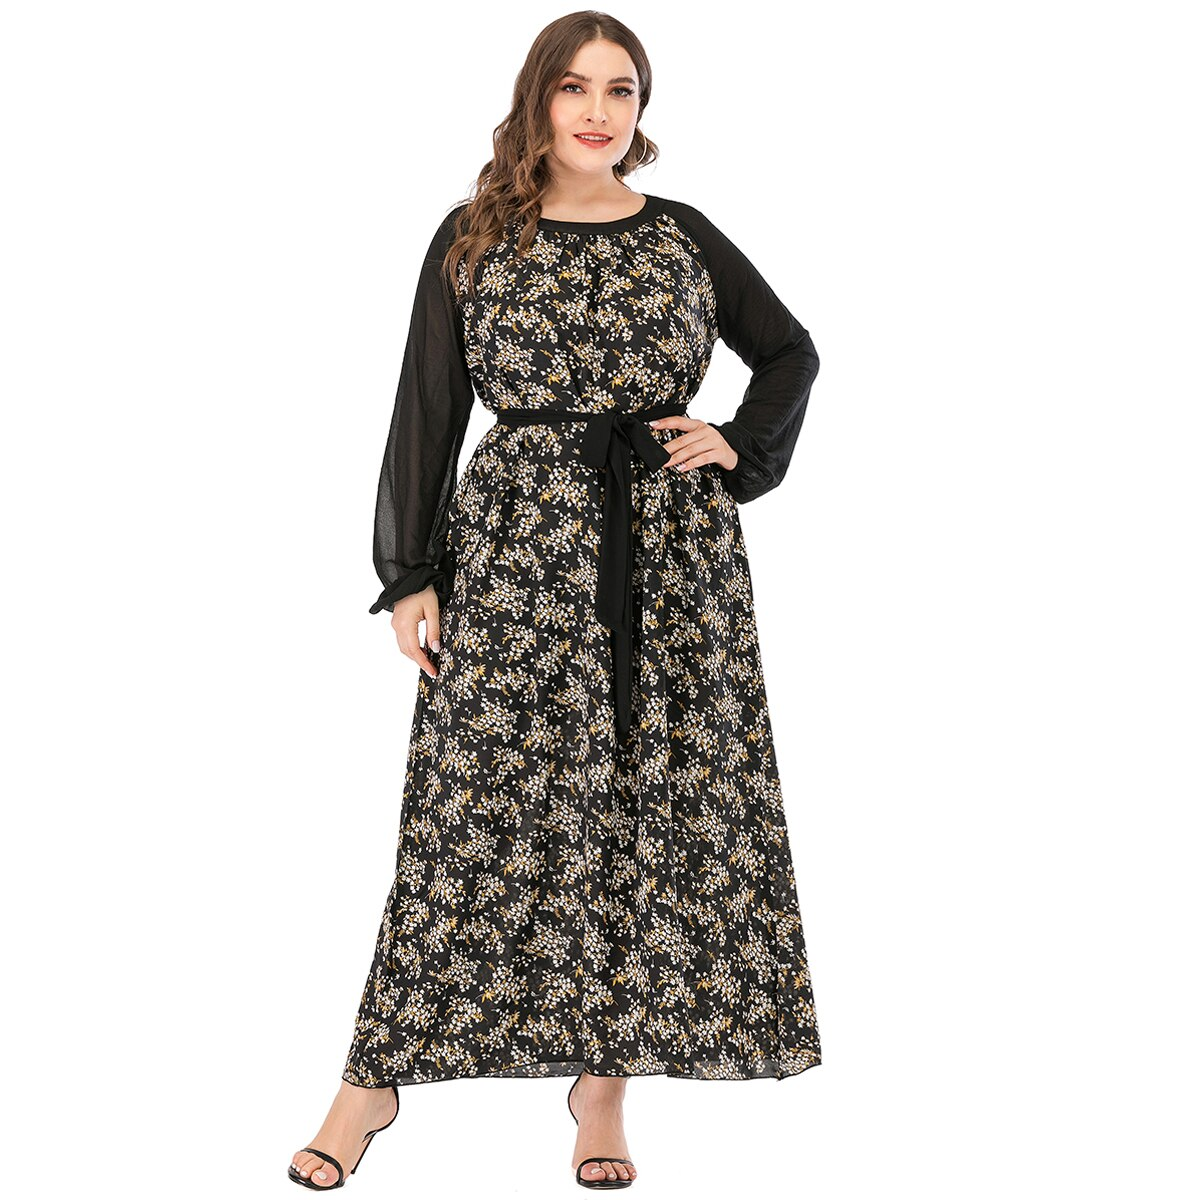 Maxi robe grande taille à manches longues